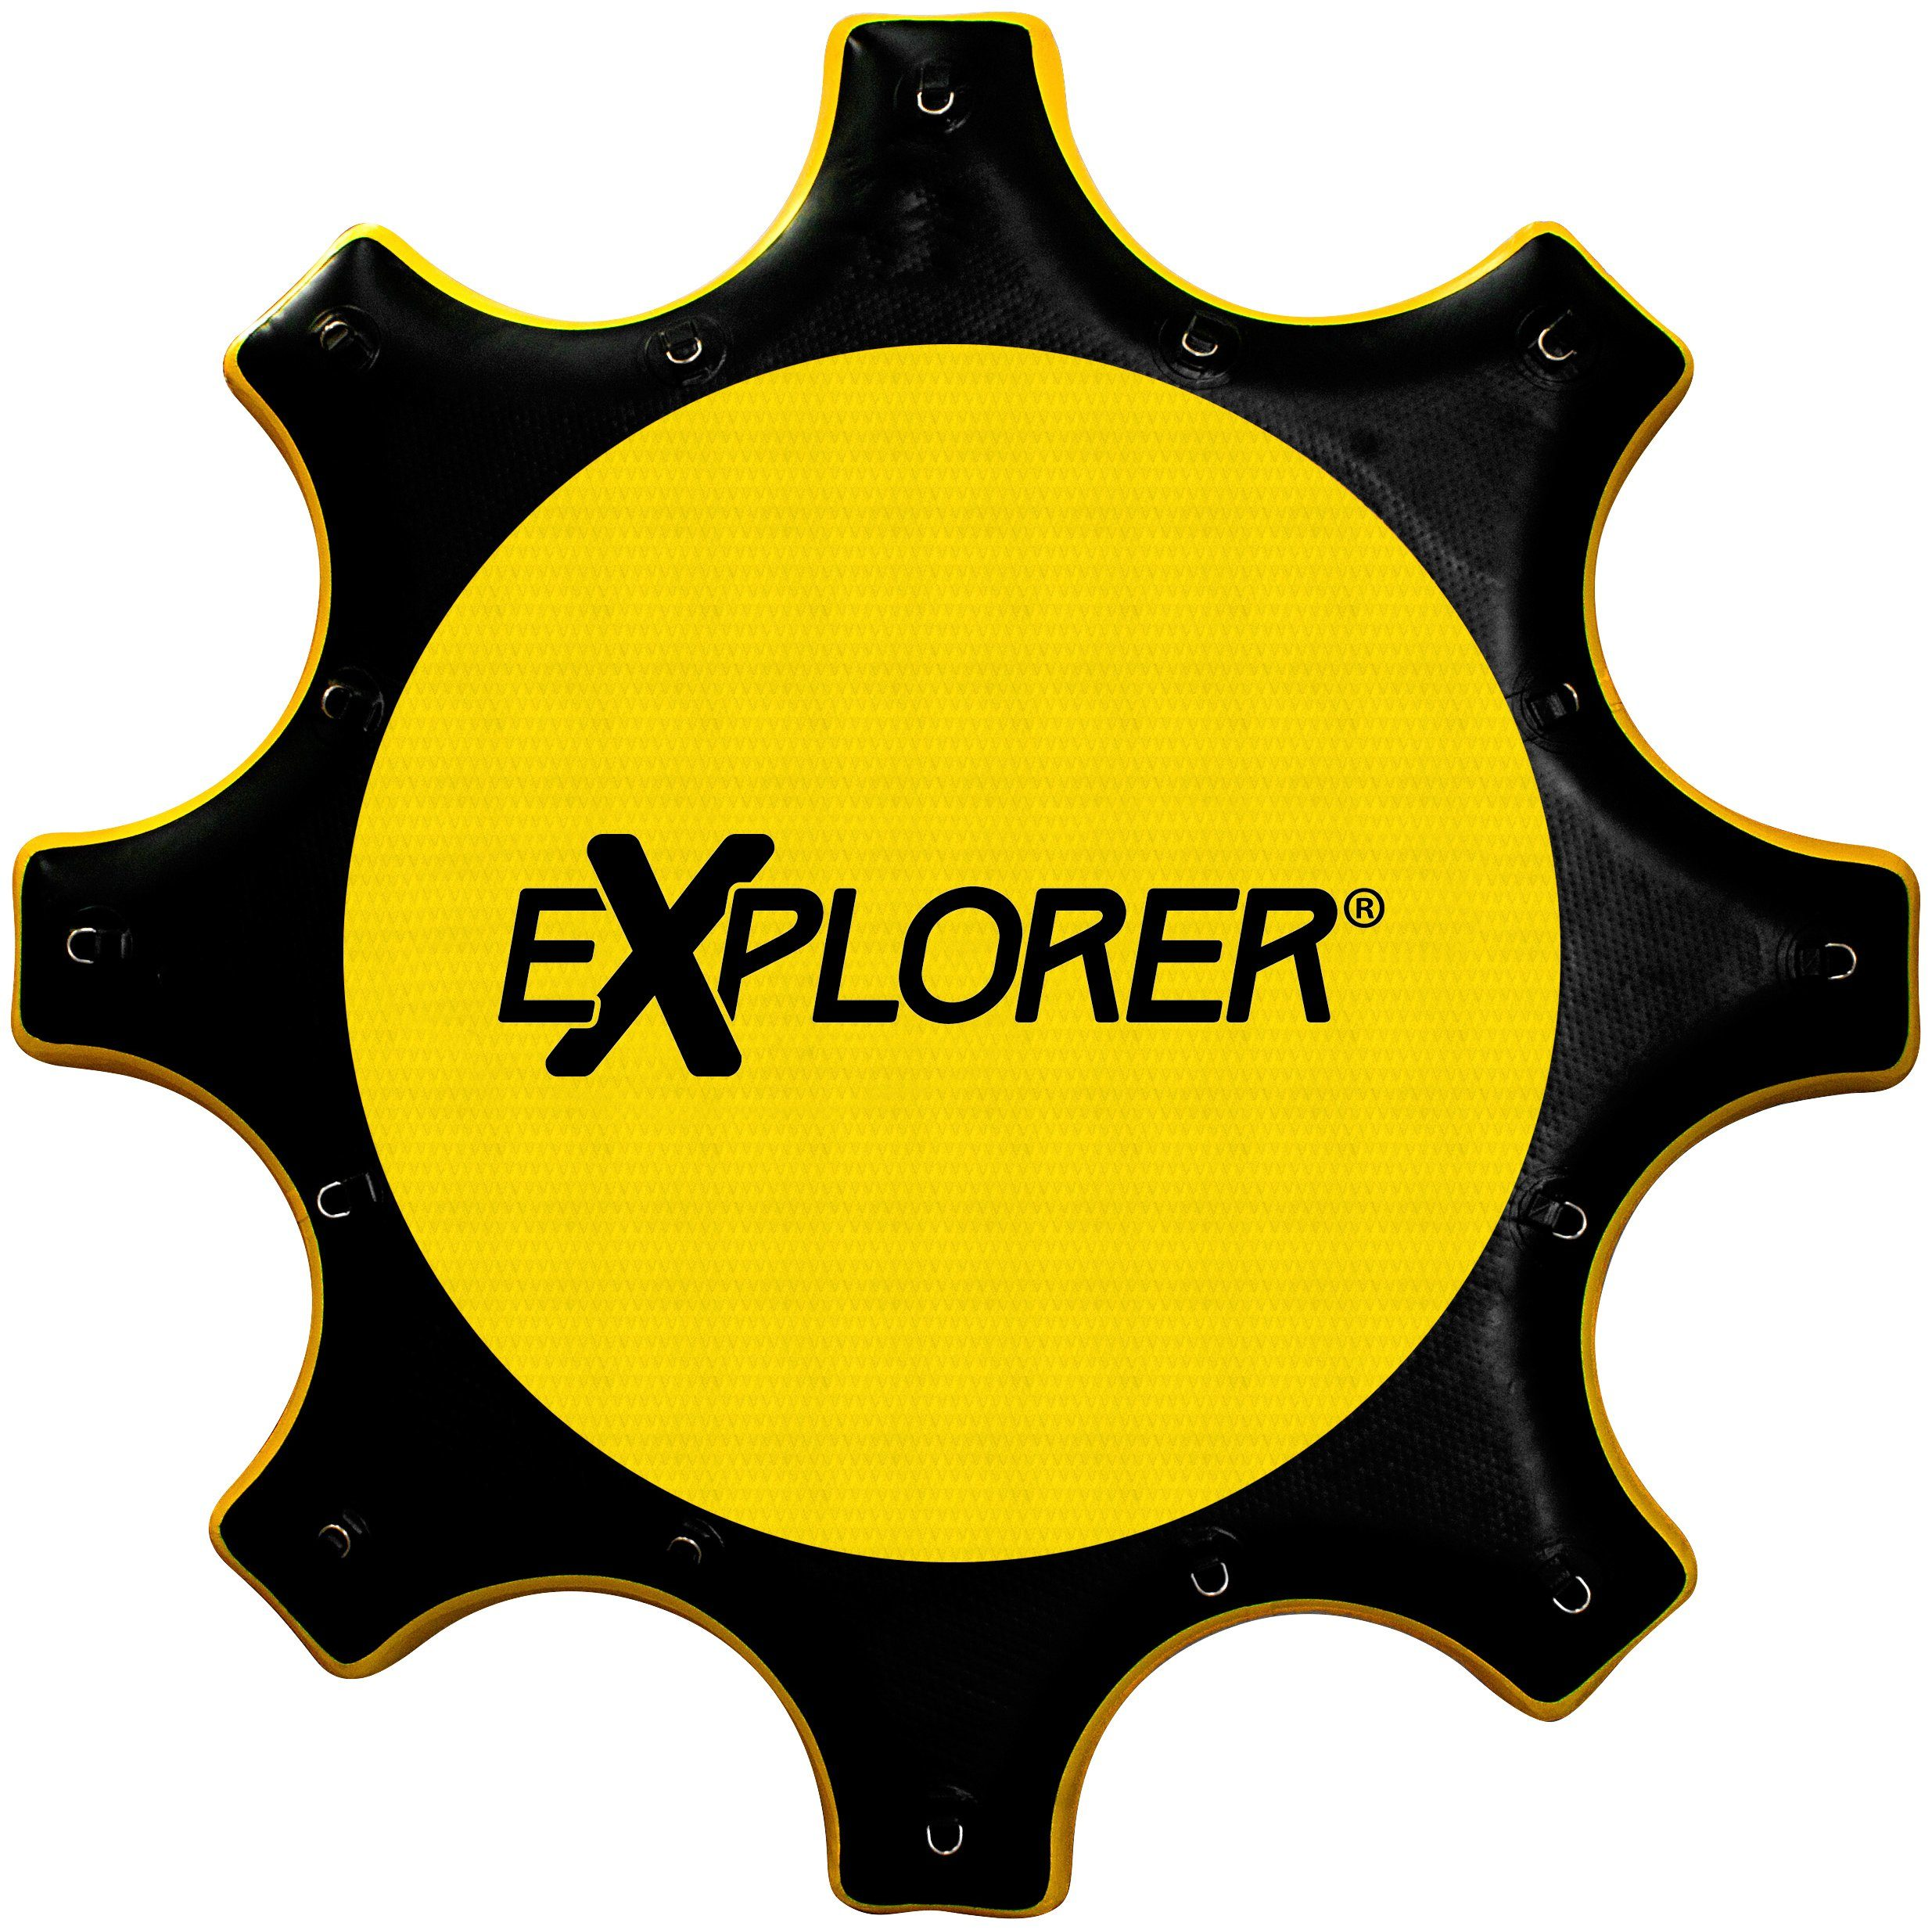 EXPLORER SUP-Dockingstation »Yoga Star«, BxL: 200x245 cm